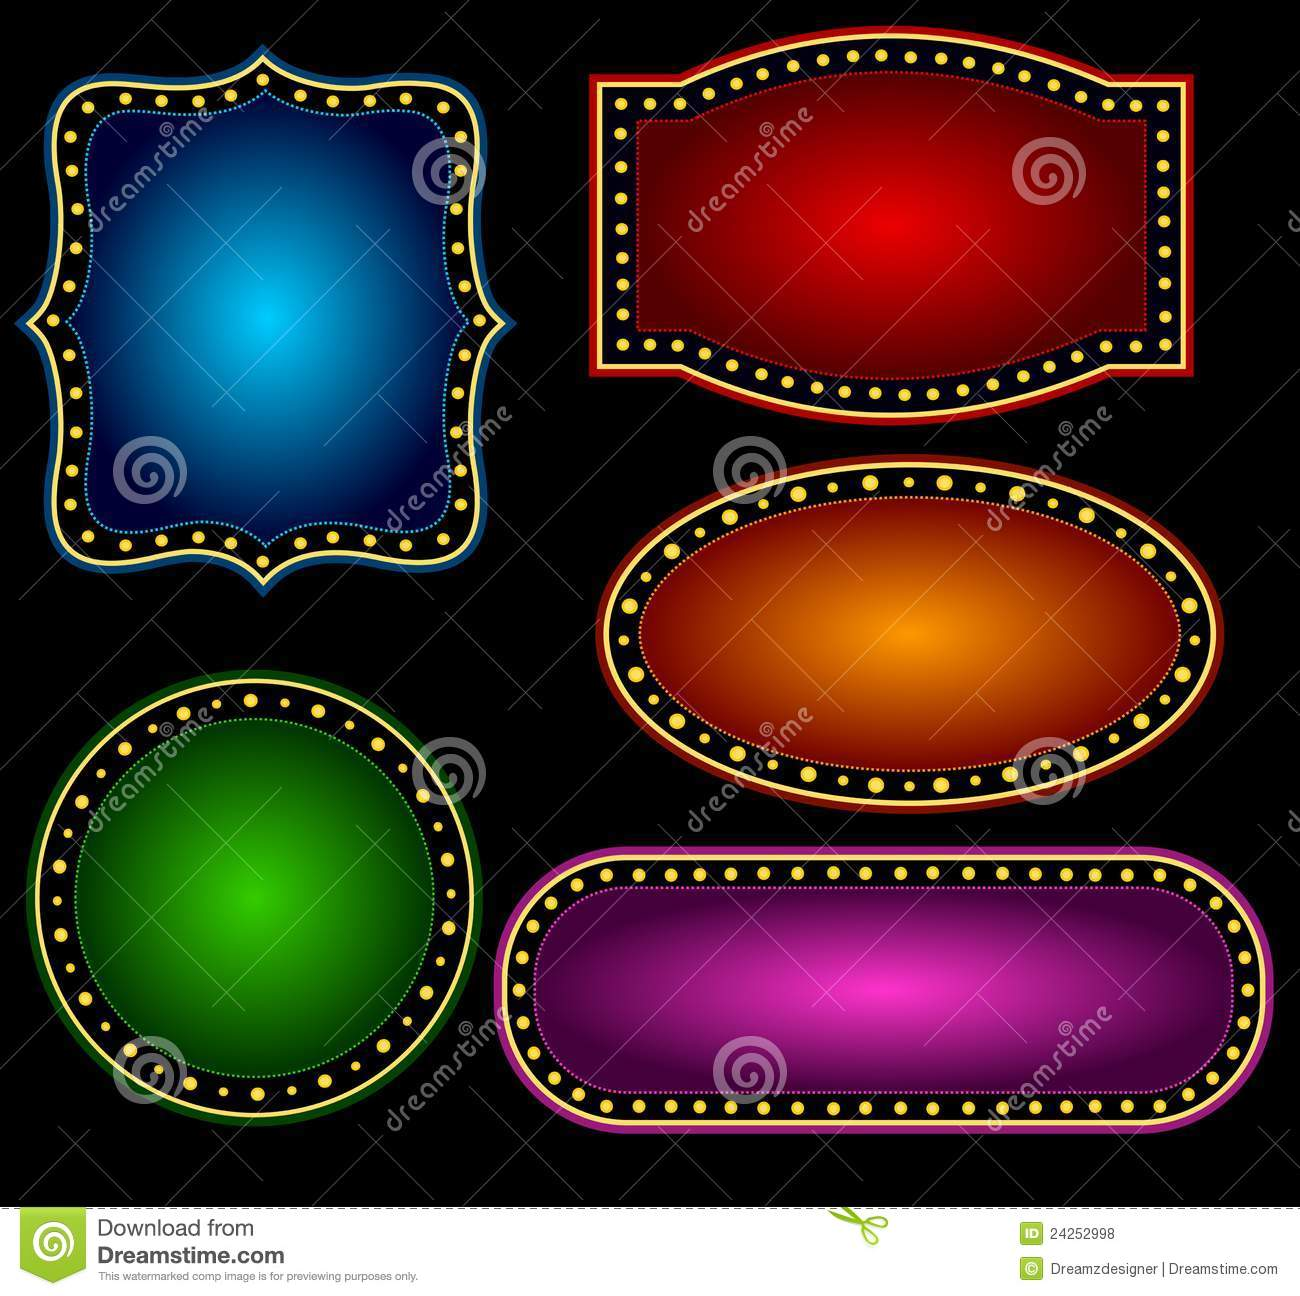 Beijingers Ultimate Round Halloween Events besides Disco also Royalty Free Stock Photos Marquee Border Image24252998 further Arrow Signs With Light Bulbs 768070 as well 15 Free Flyers For Christmas And New Year Party. on movie night templates free